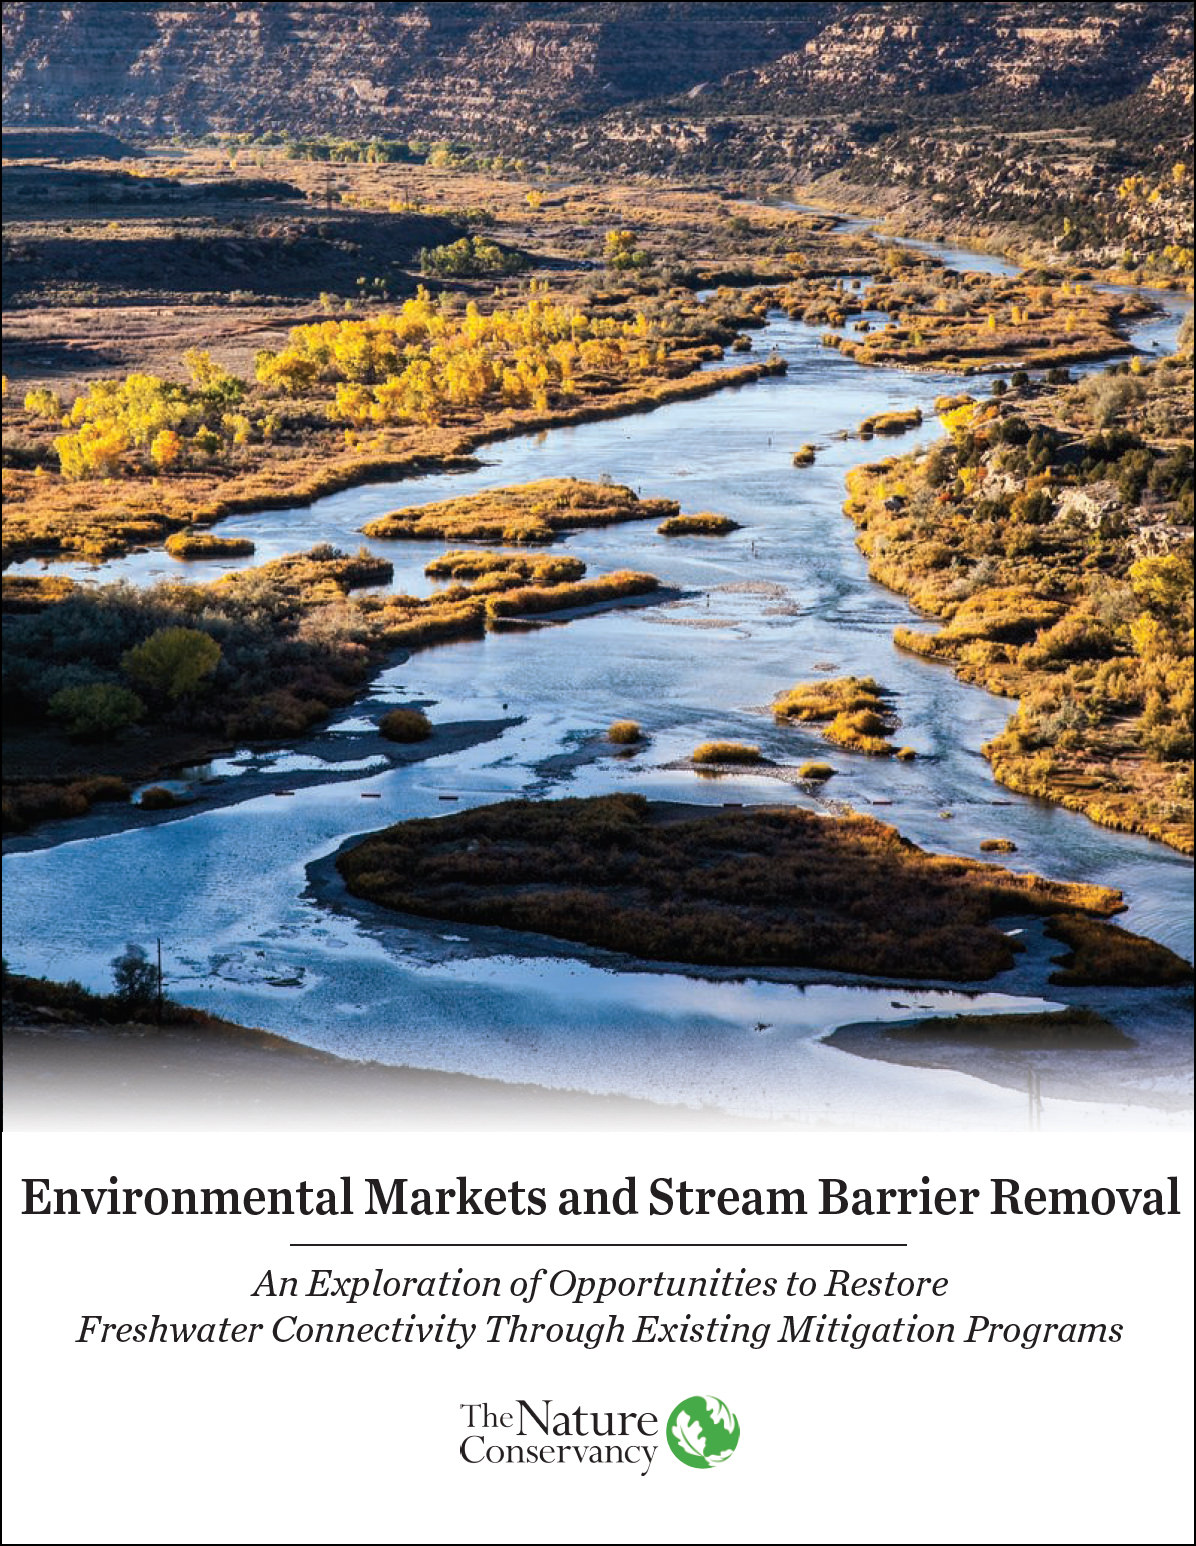 Environmental Markets and Stream Barrier Removal Report - An exploration of opportunities to restore freshwater connectivity through existing mitigation programs